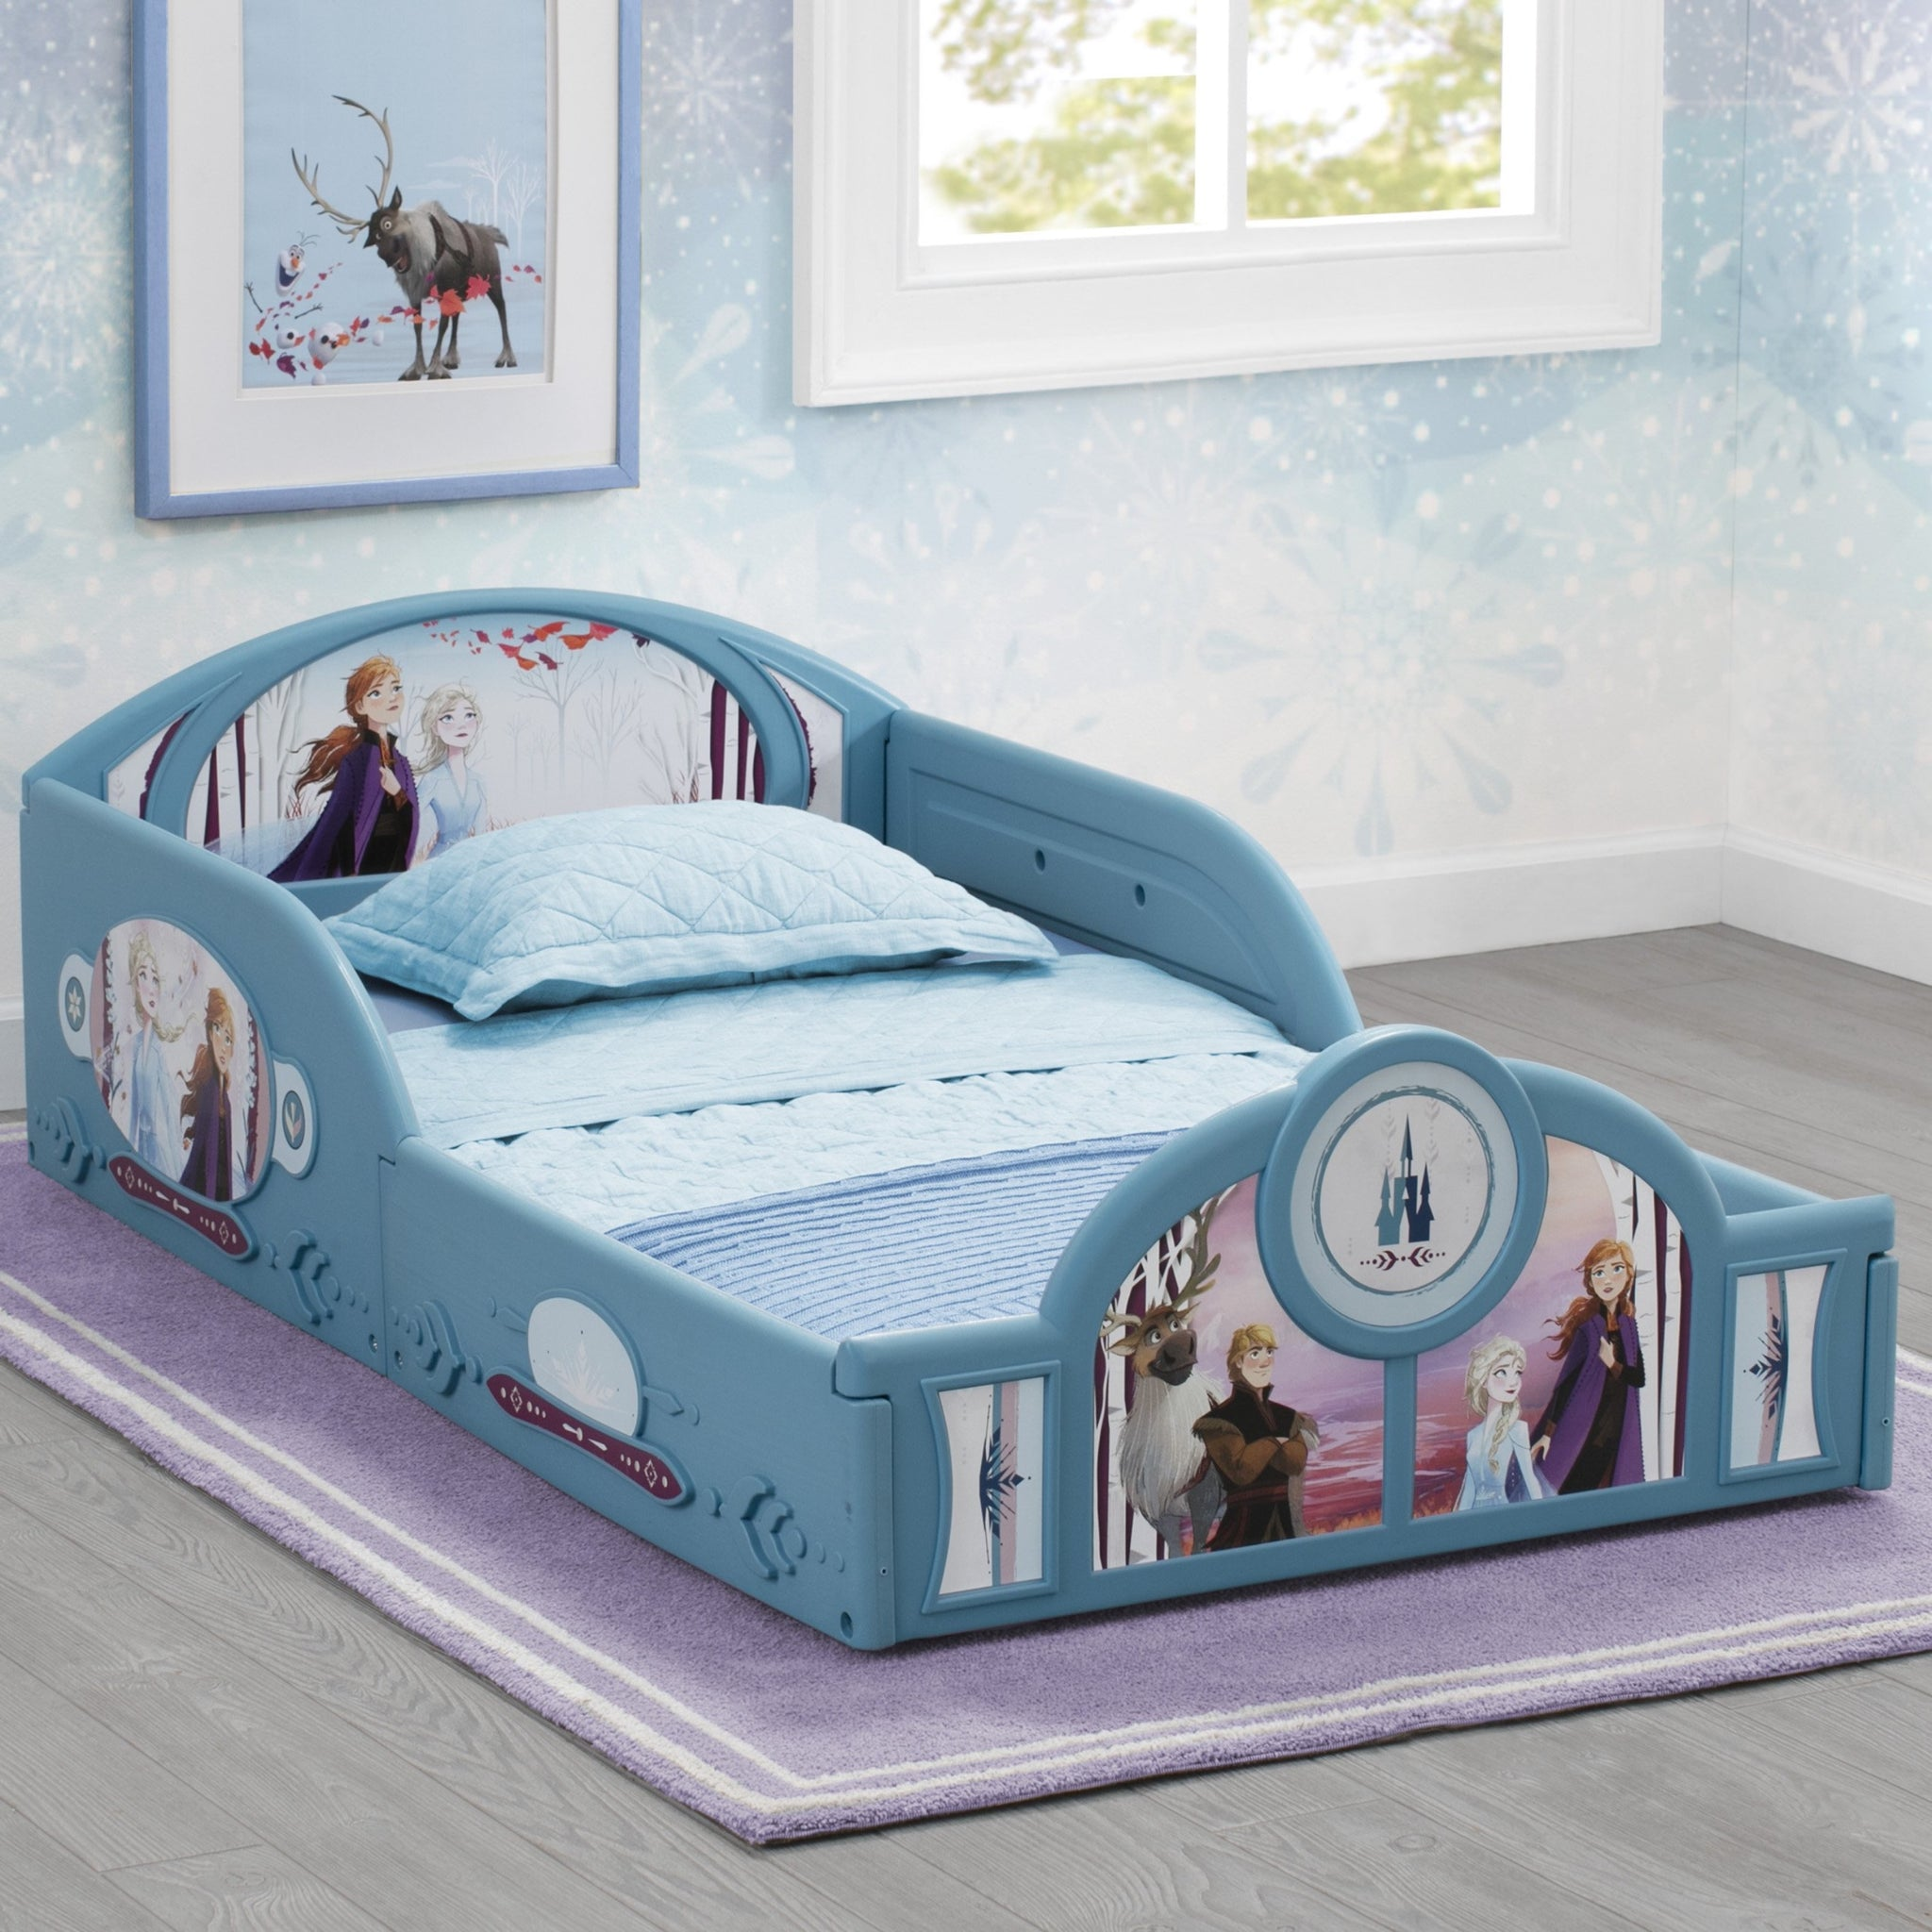 Frozen II Plastic Sleep and Play Toddler Bed